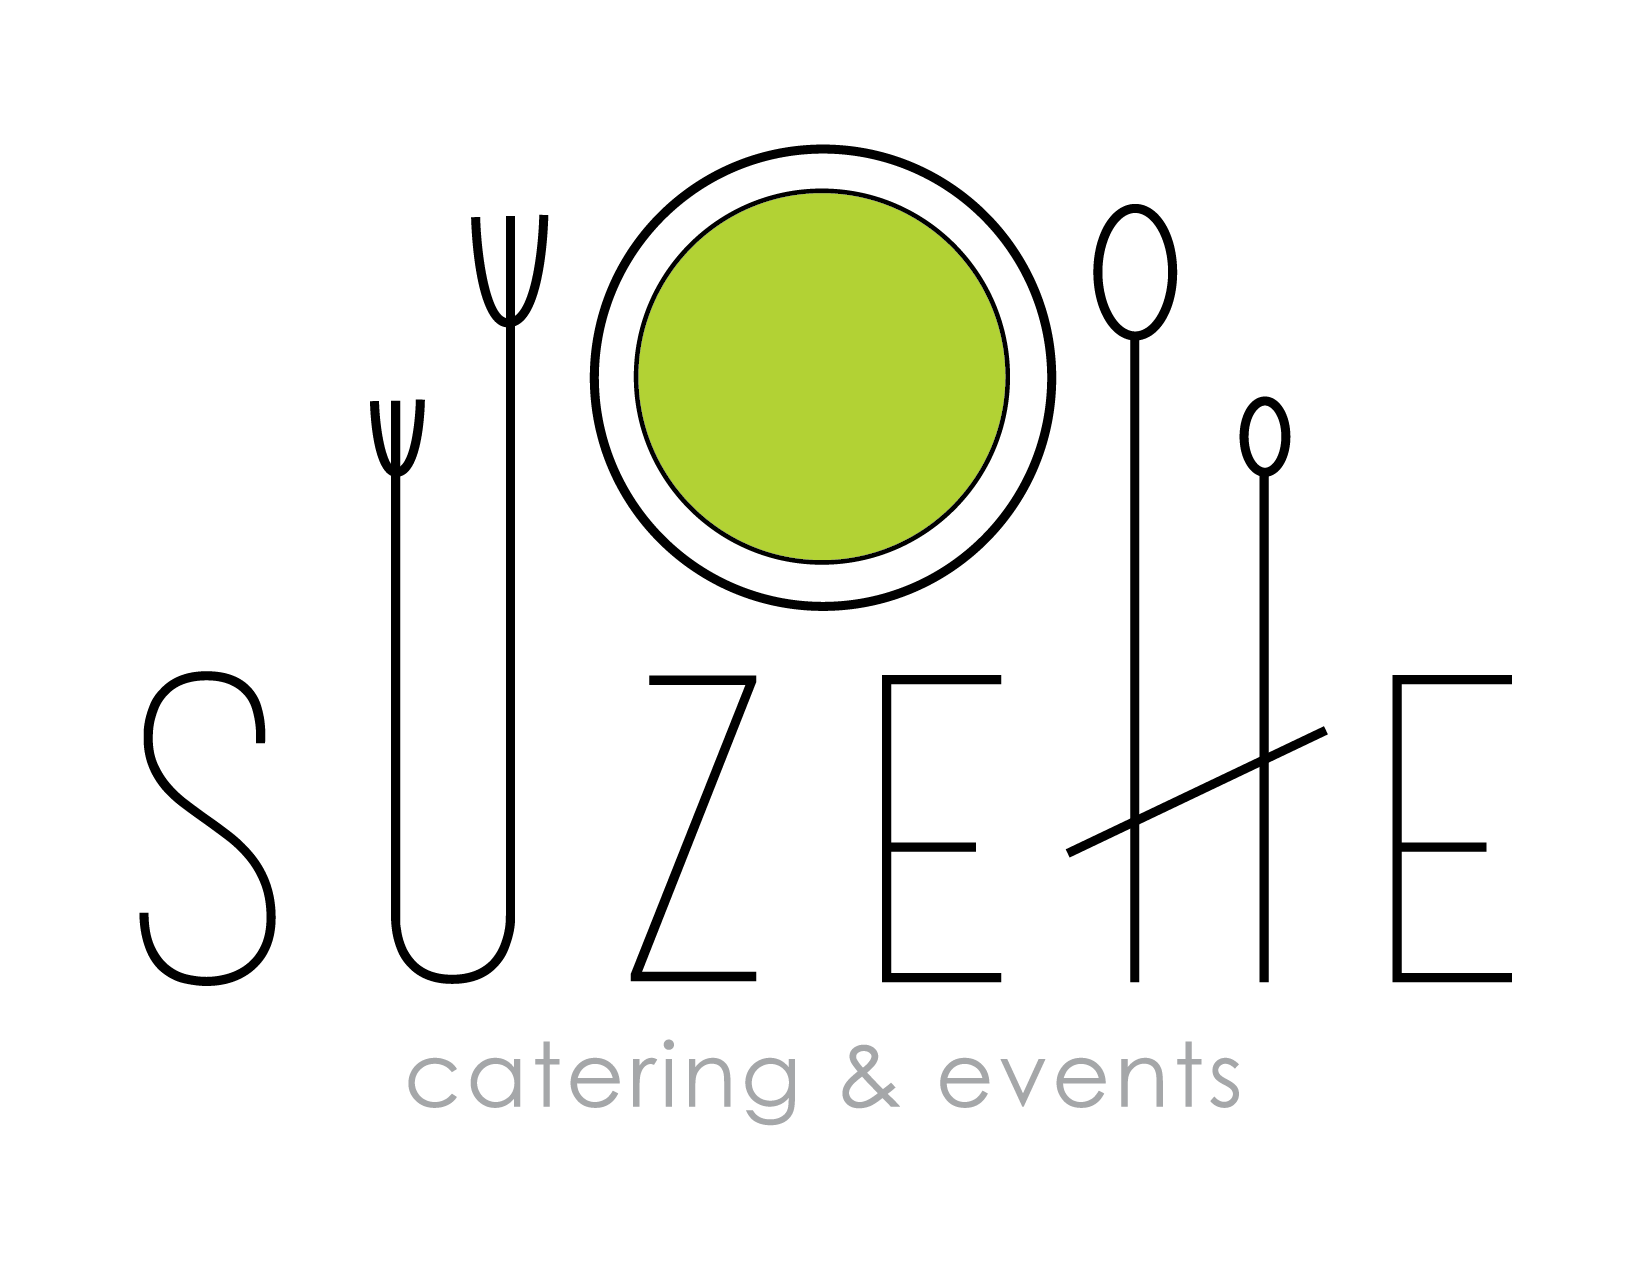 Catering-Footer-Logo-01.png